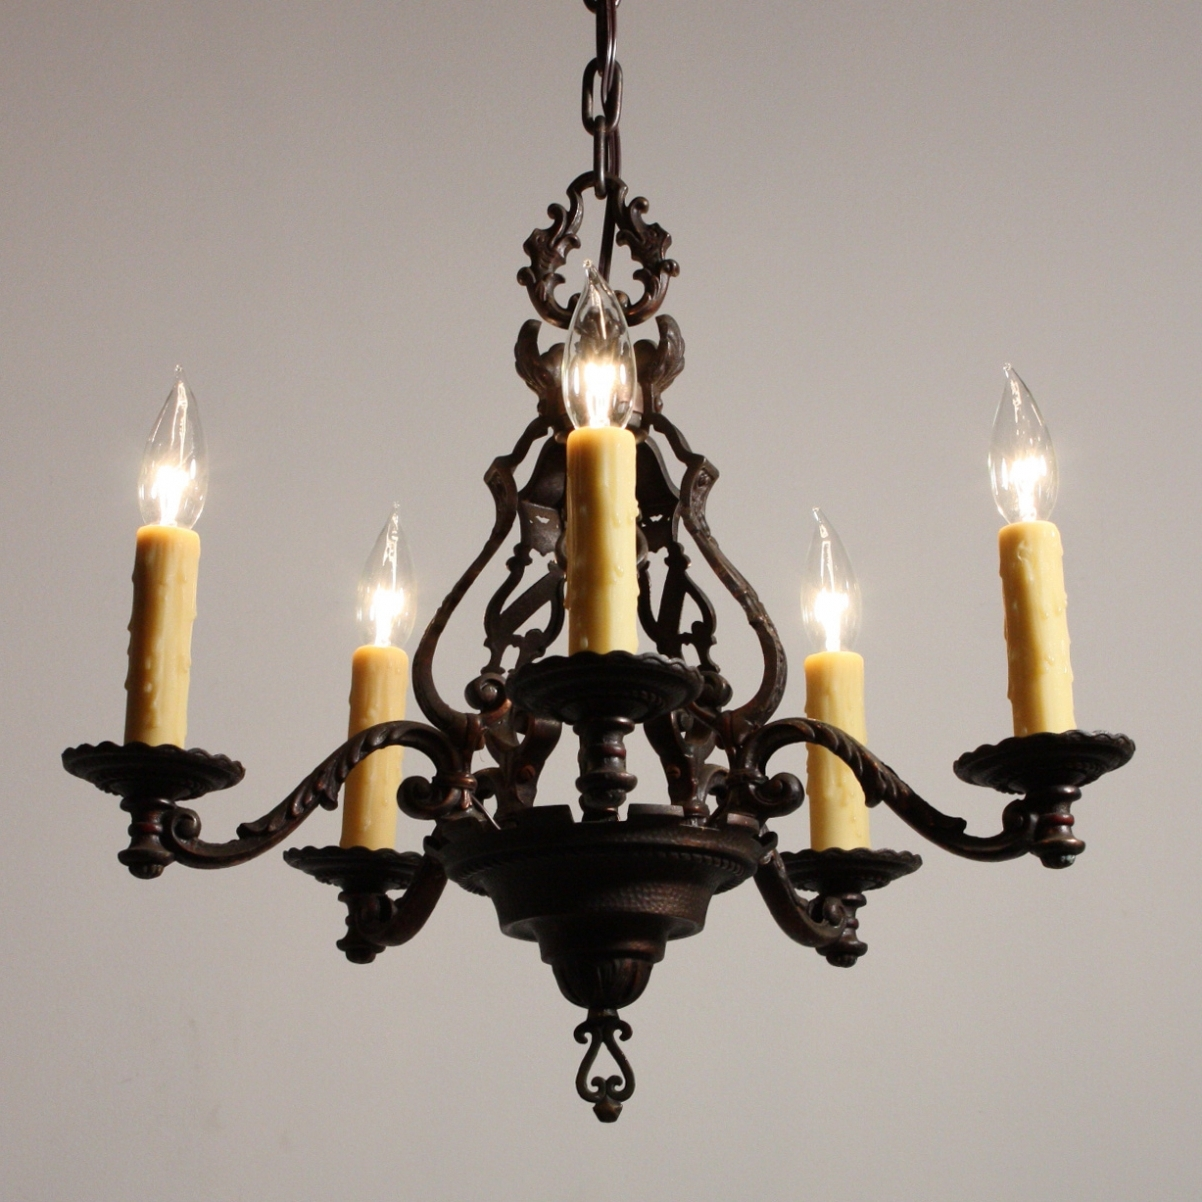 Cast Iron Chandelier With Regard To Current Antique Cast Iron Chandelier – Chandelier Designs (View 3 of 20)